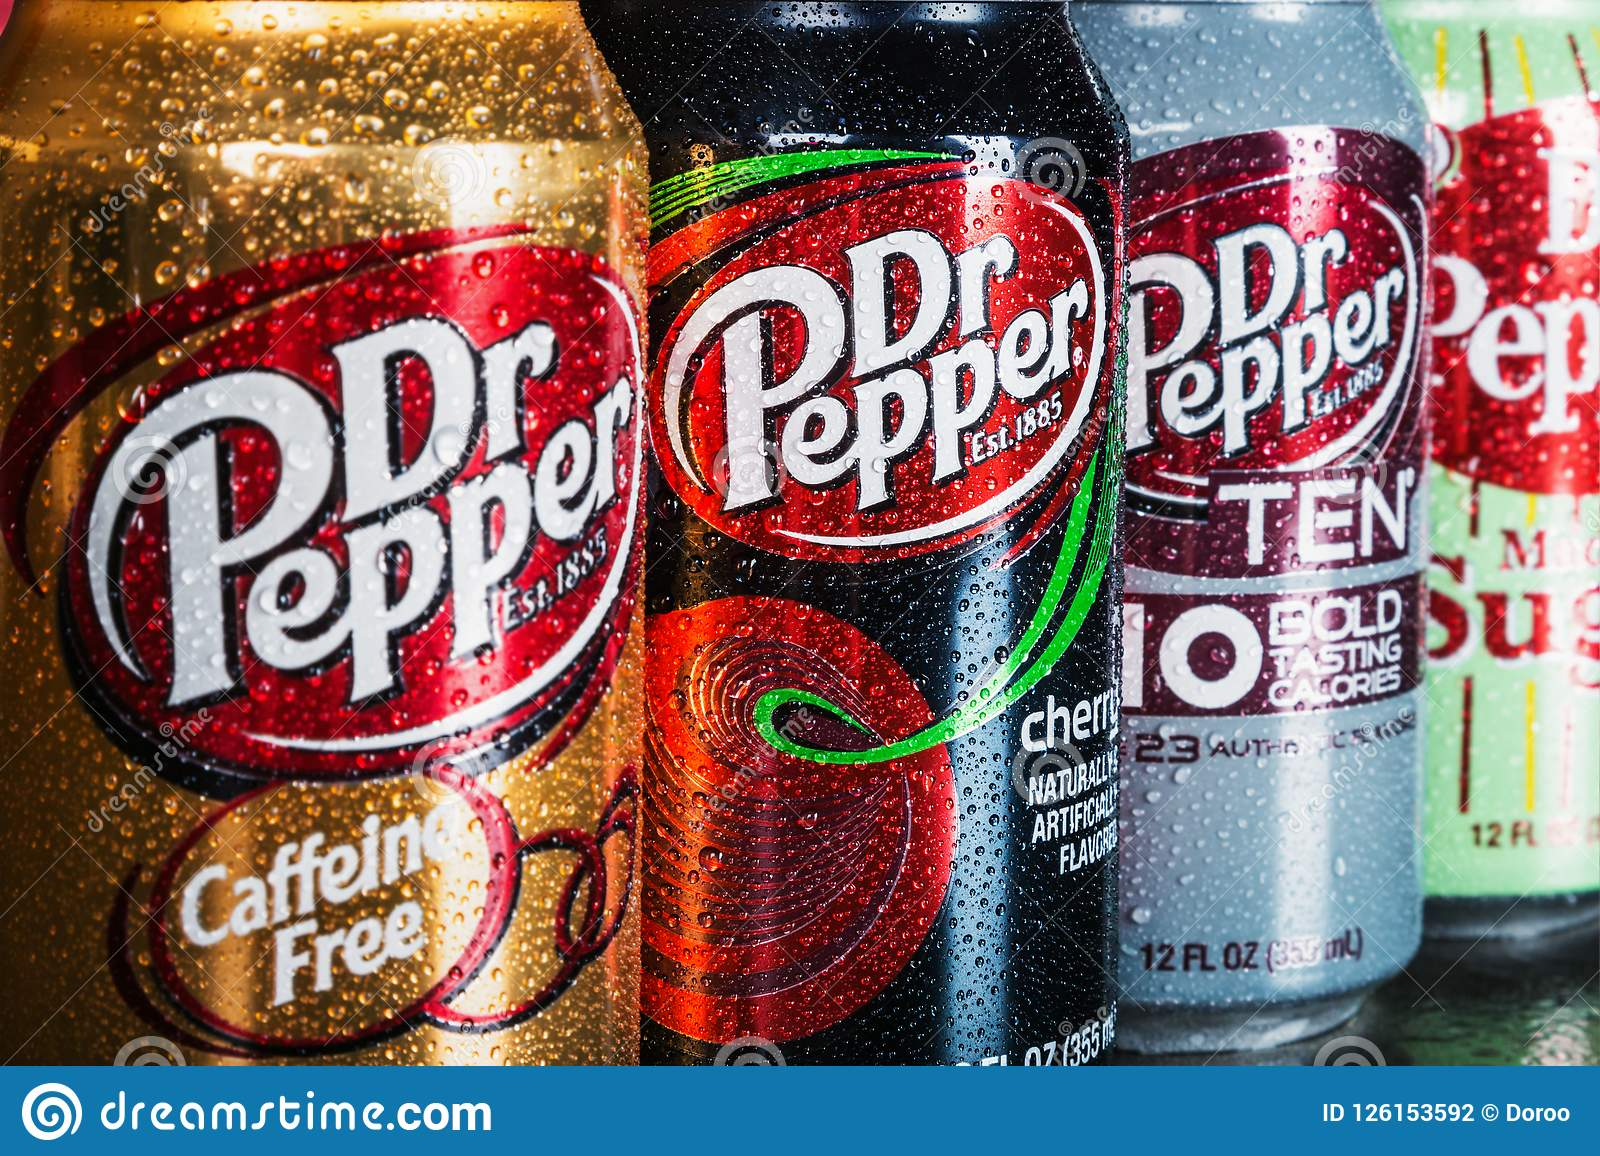 Can Dr. pepper drink with different flavor